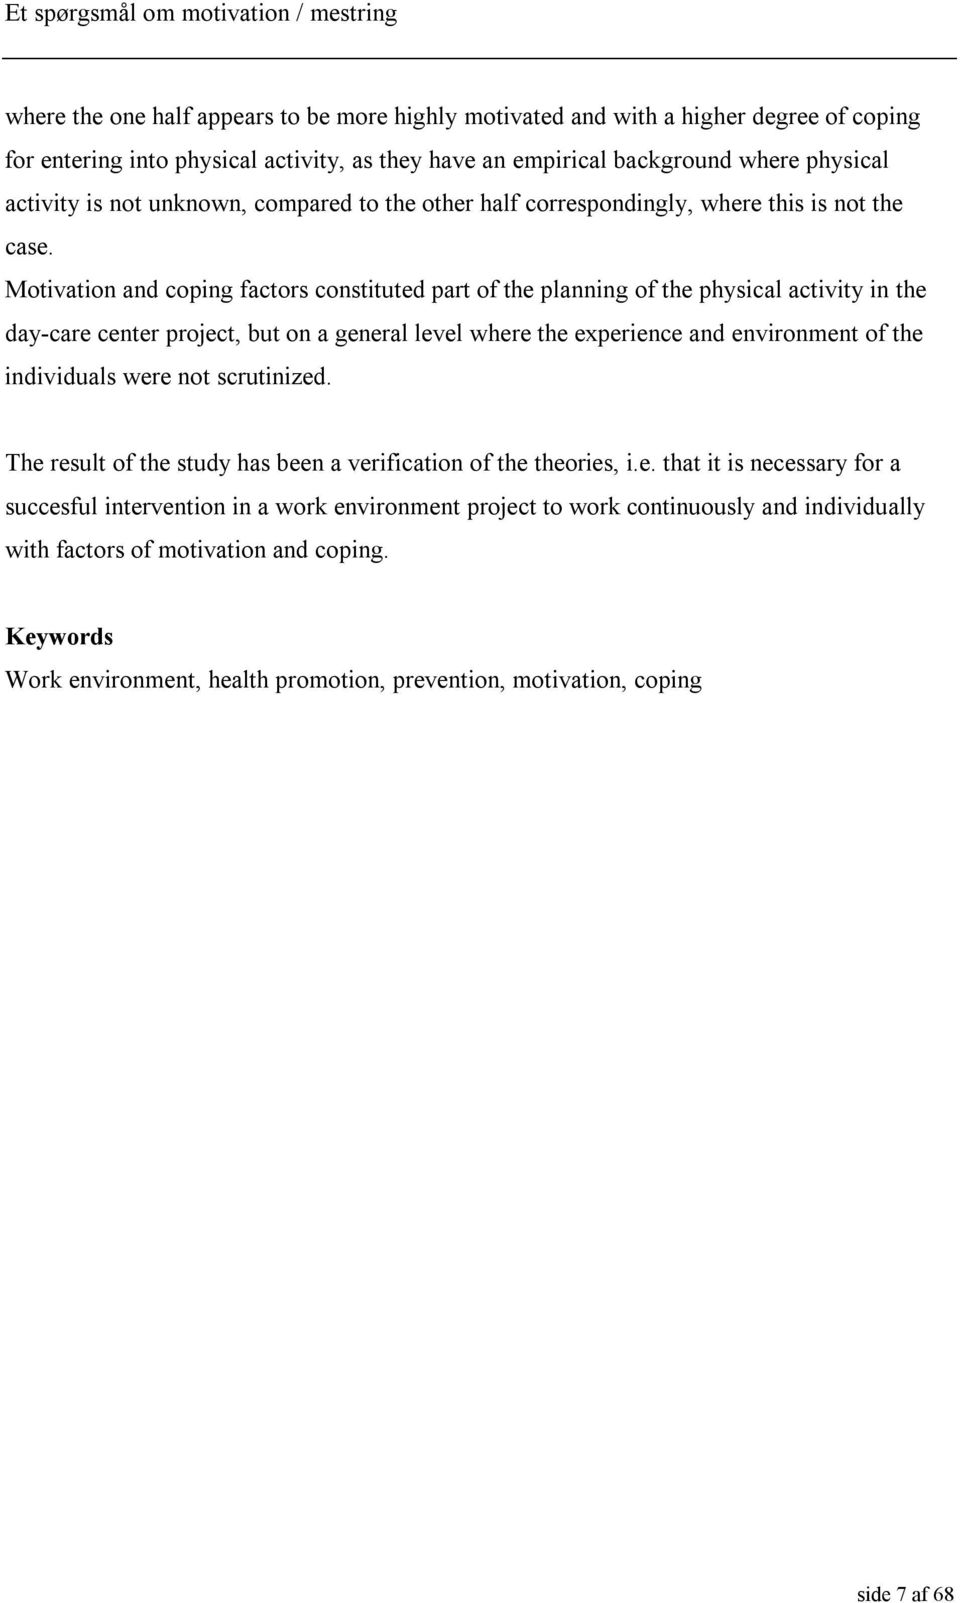 Motivation and coping factors constituted part of the planning of the physical activity in the day-care center project, but on a general level where the experience and environment of the individuals